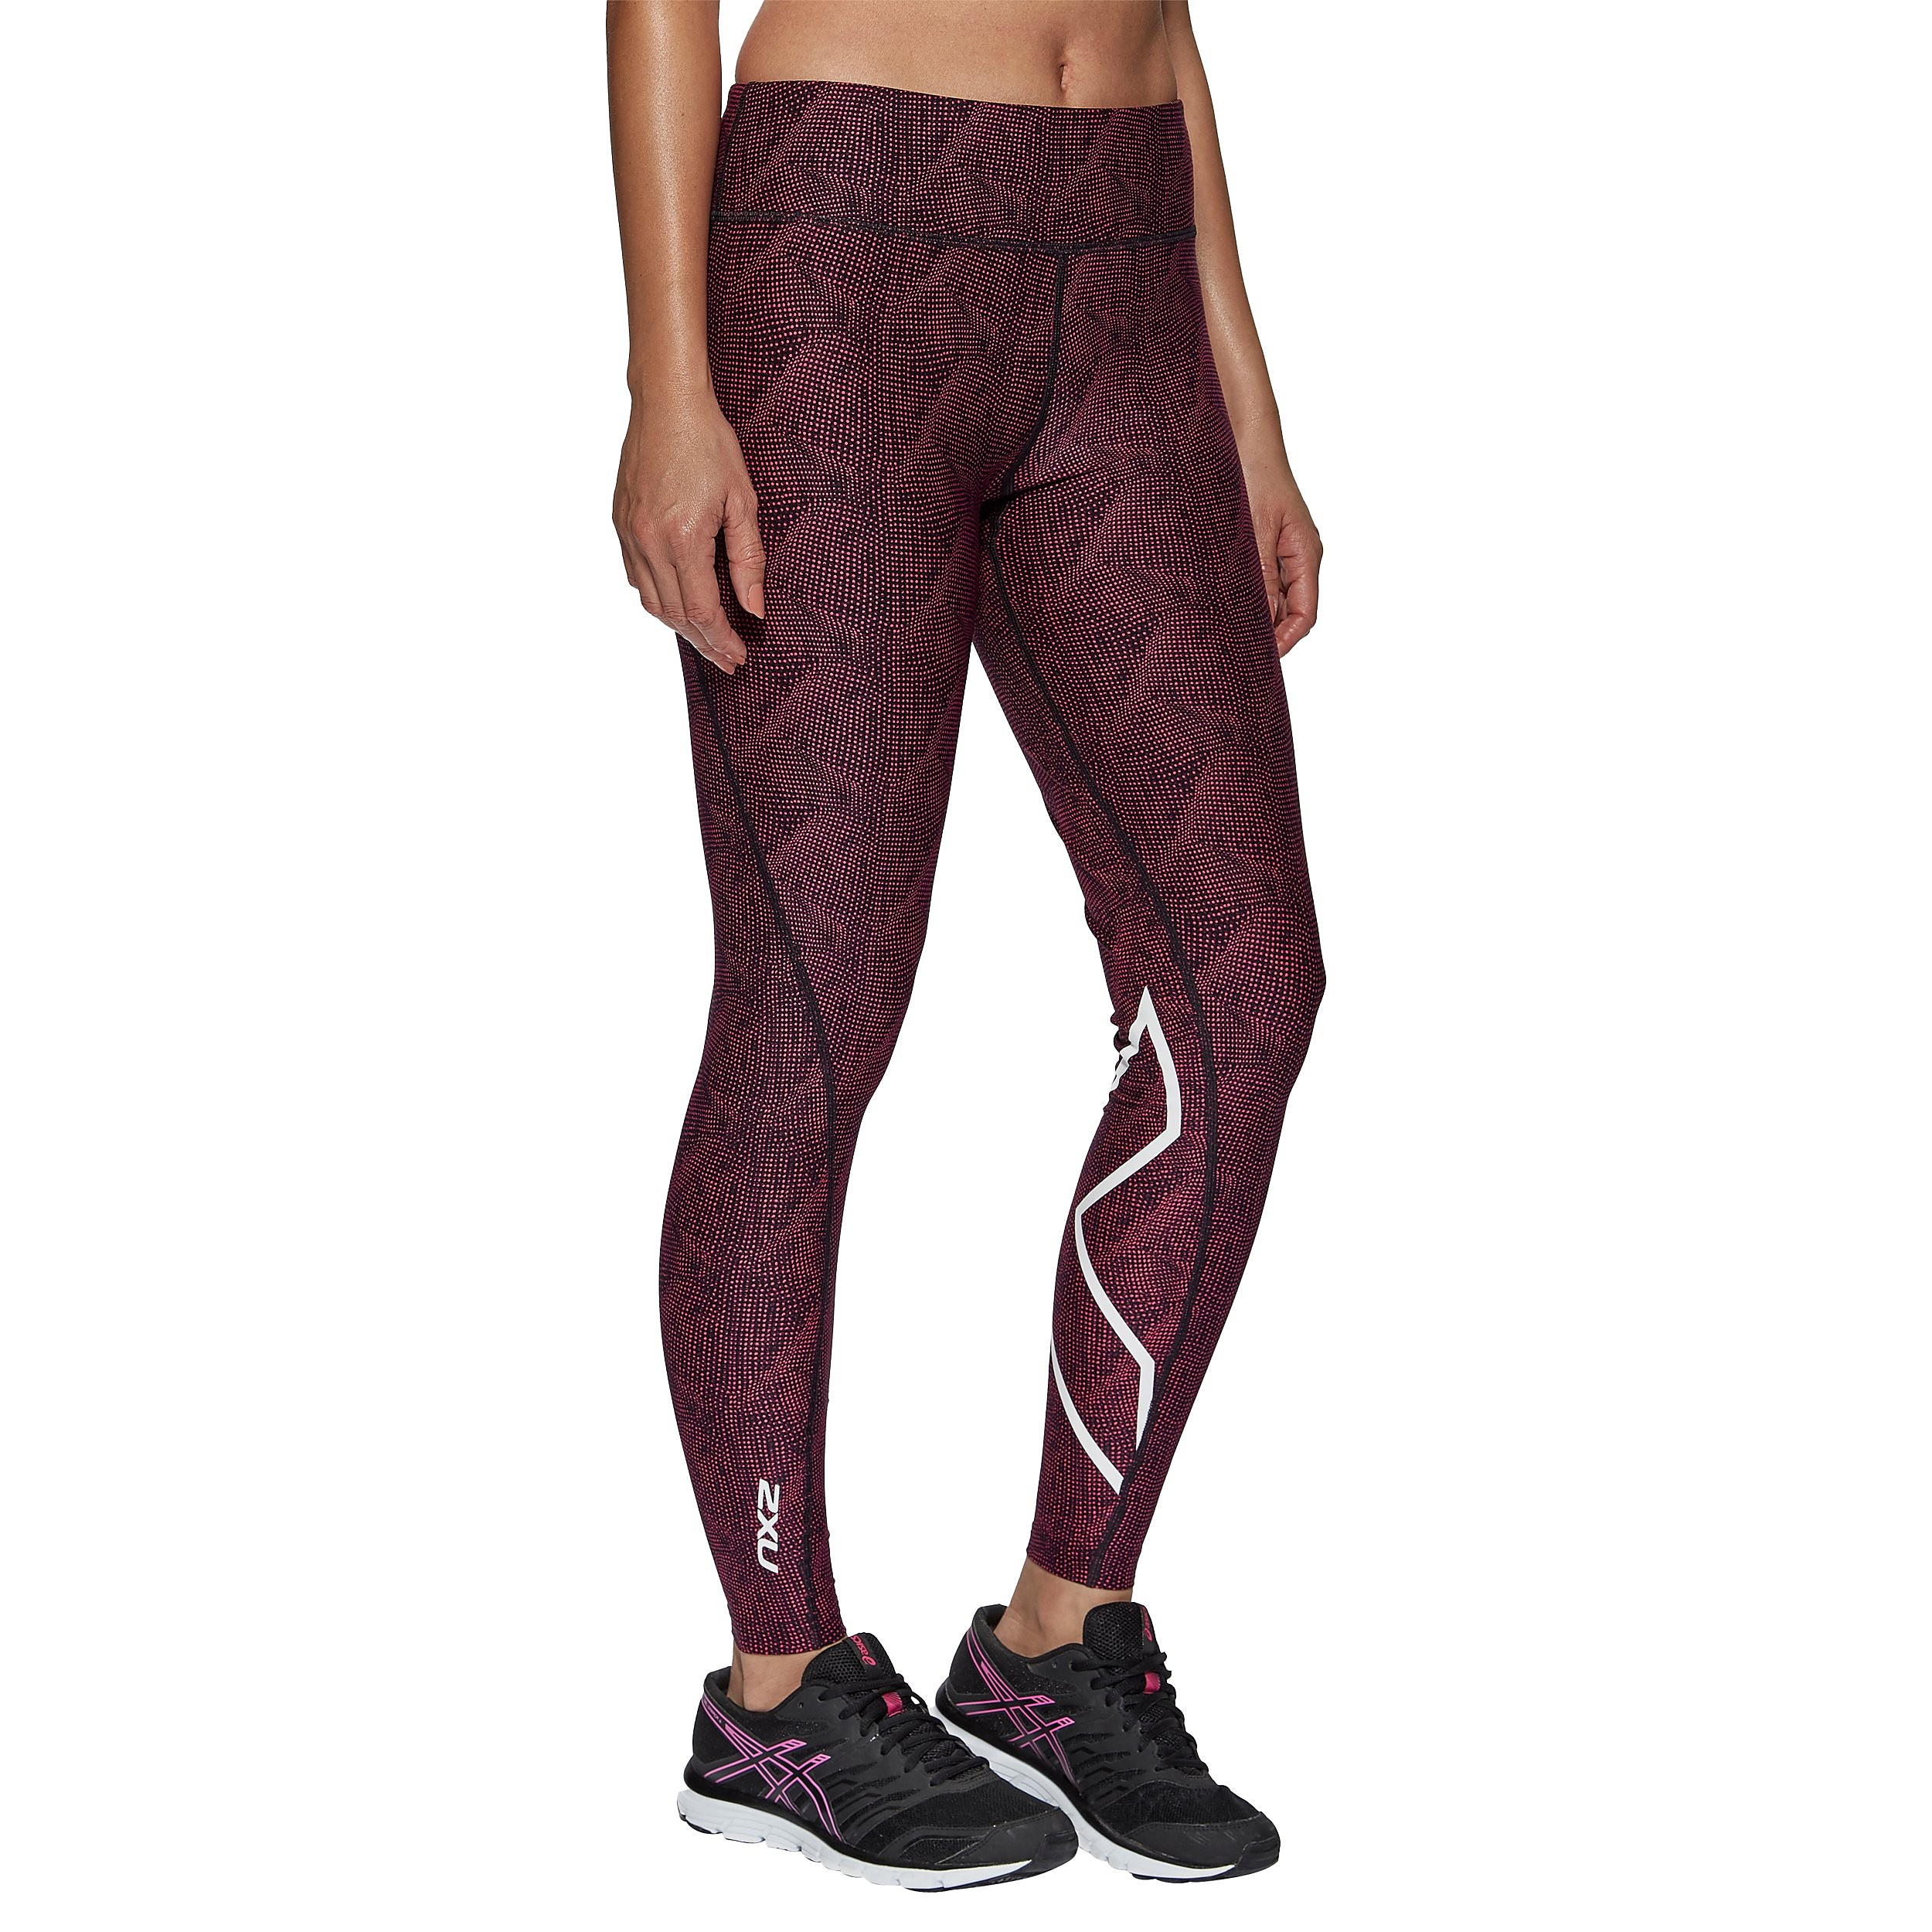 2XU Mid-Rise Print Women's Compression Tights